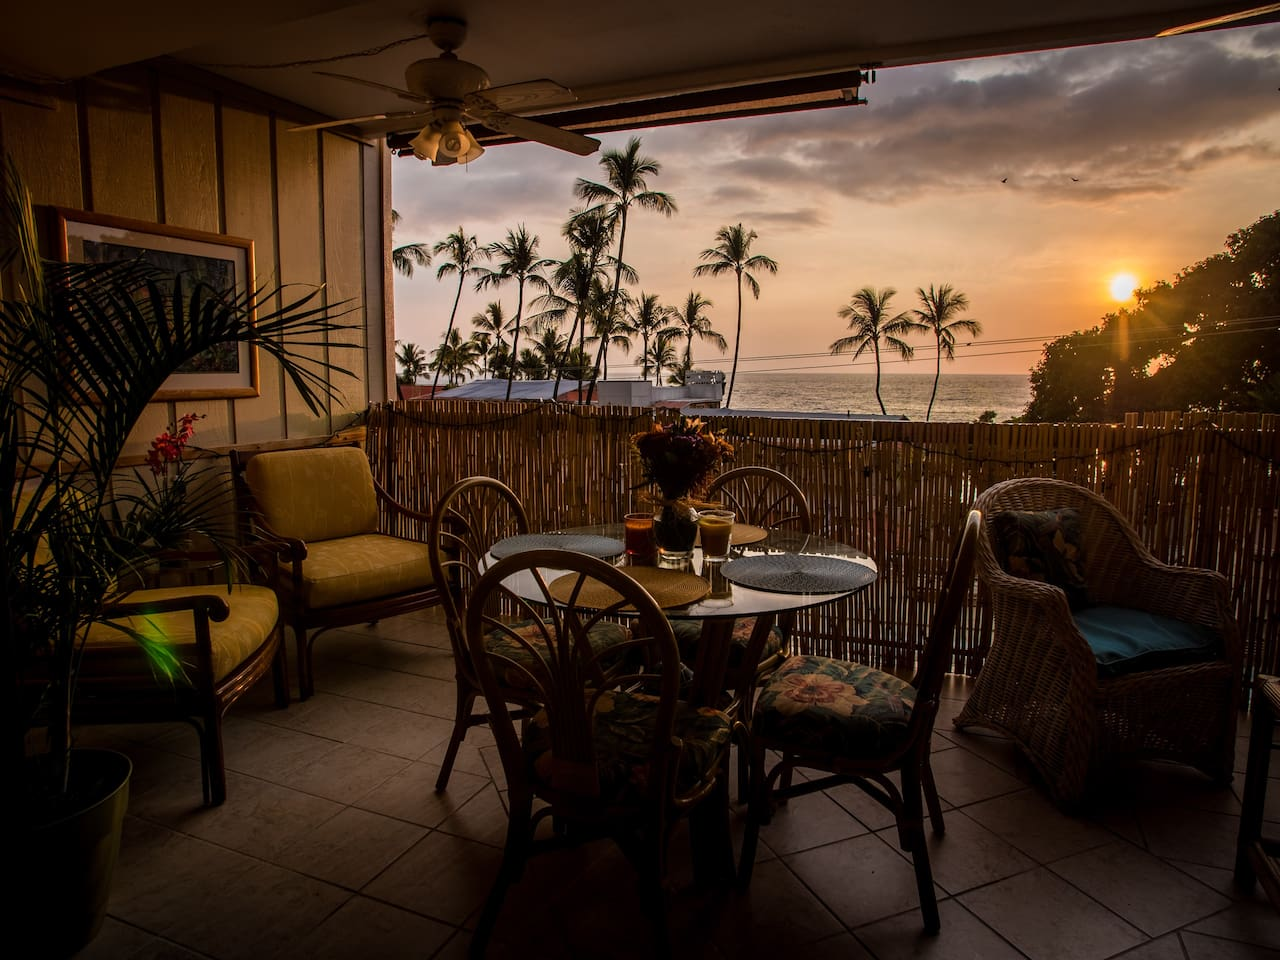 Comfortable Lanai, great view for wonderful meals at sunset.  Shades for the afternoon when the sun shines in.